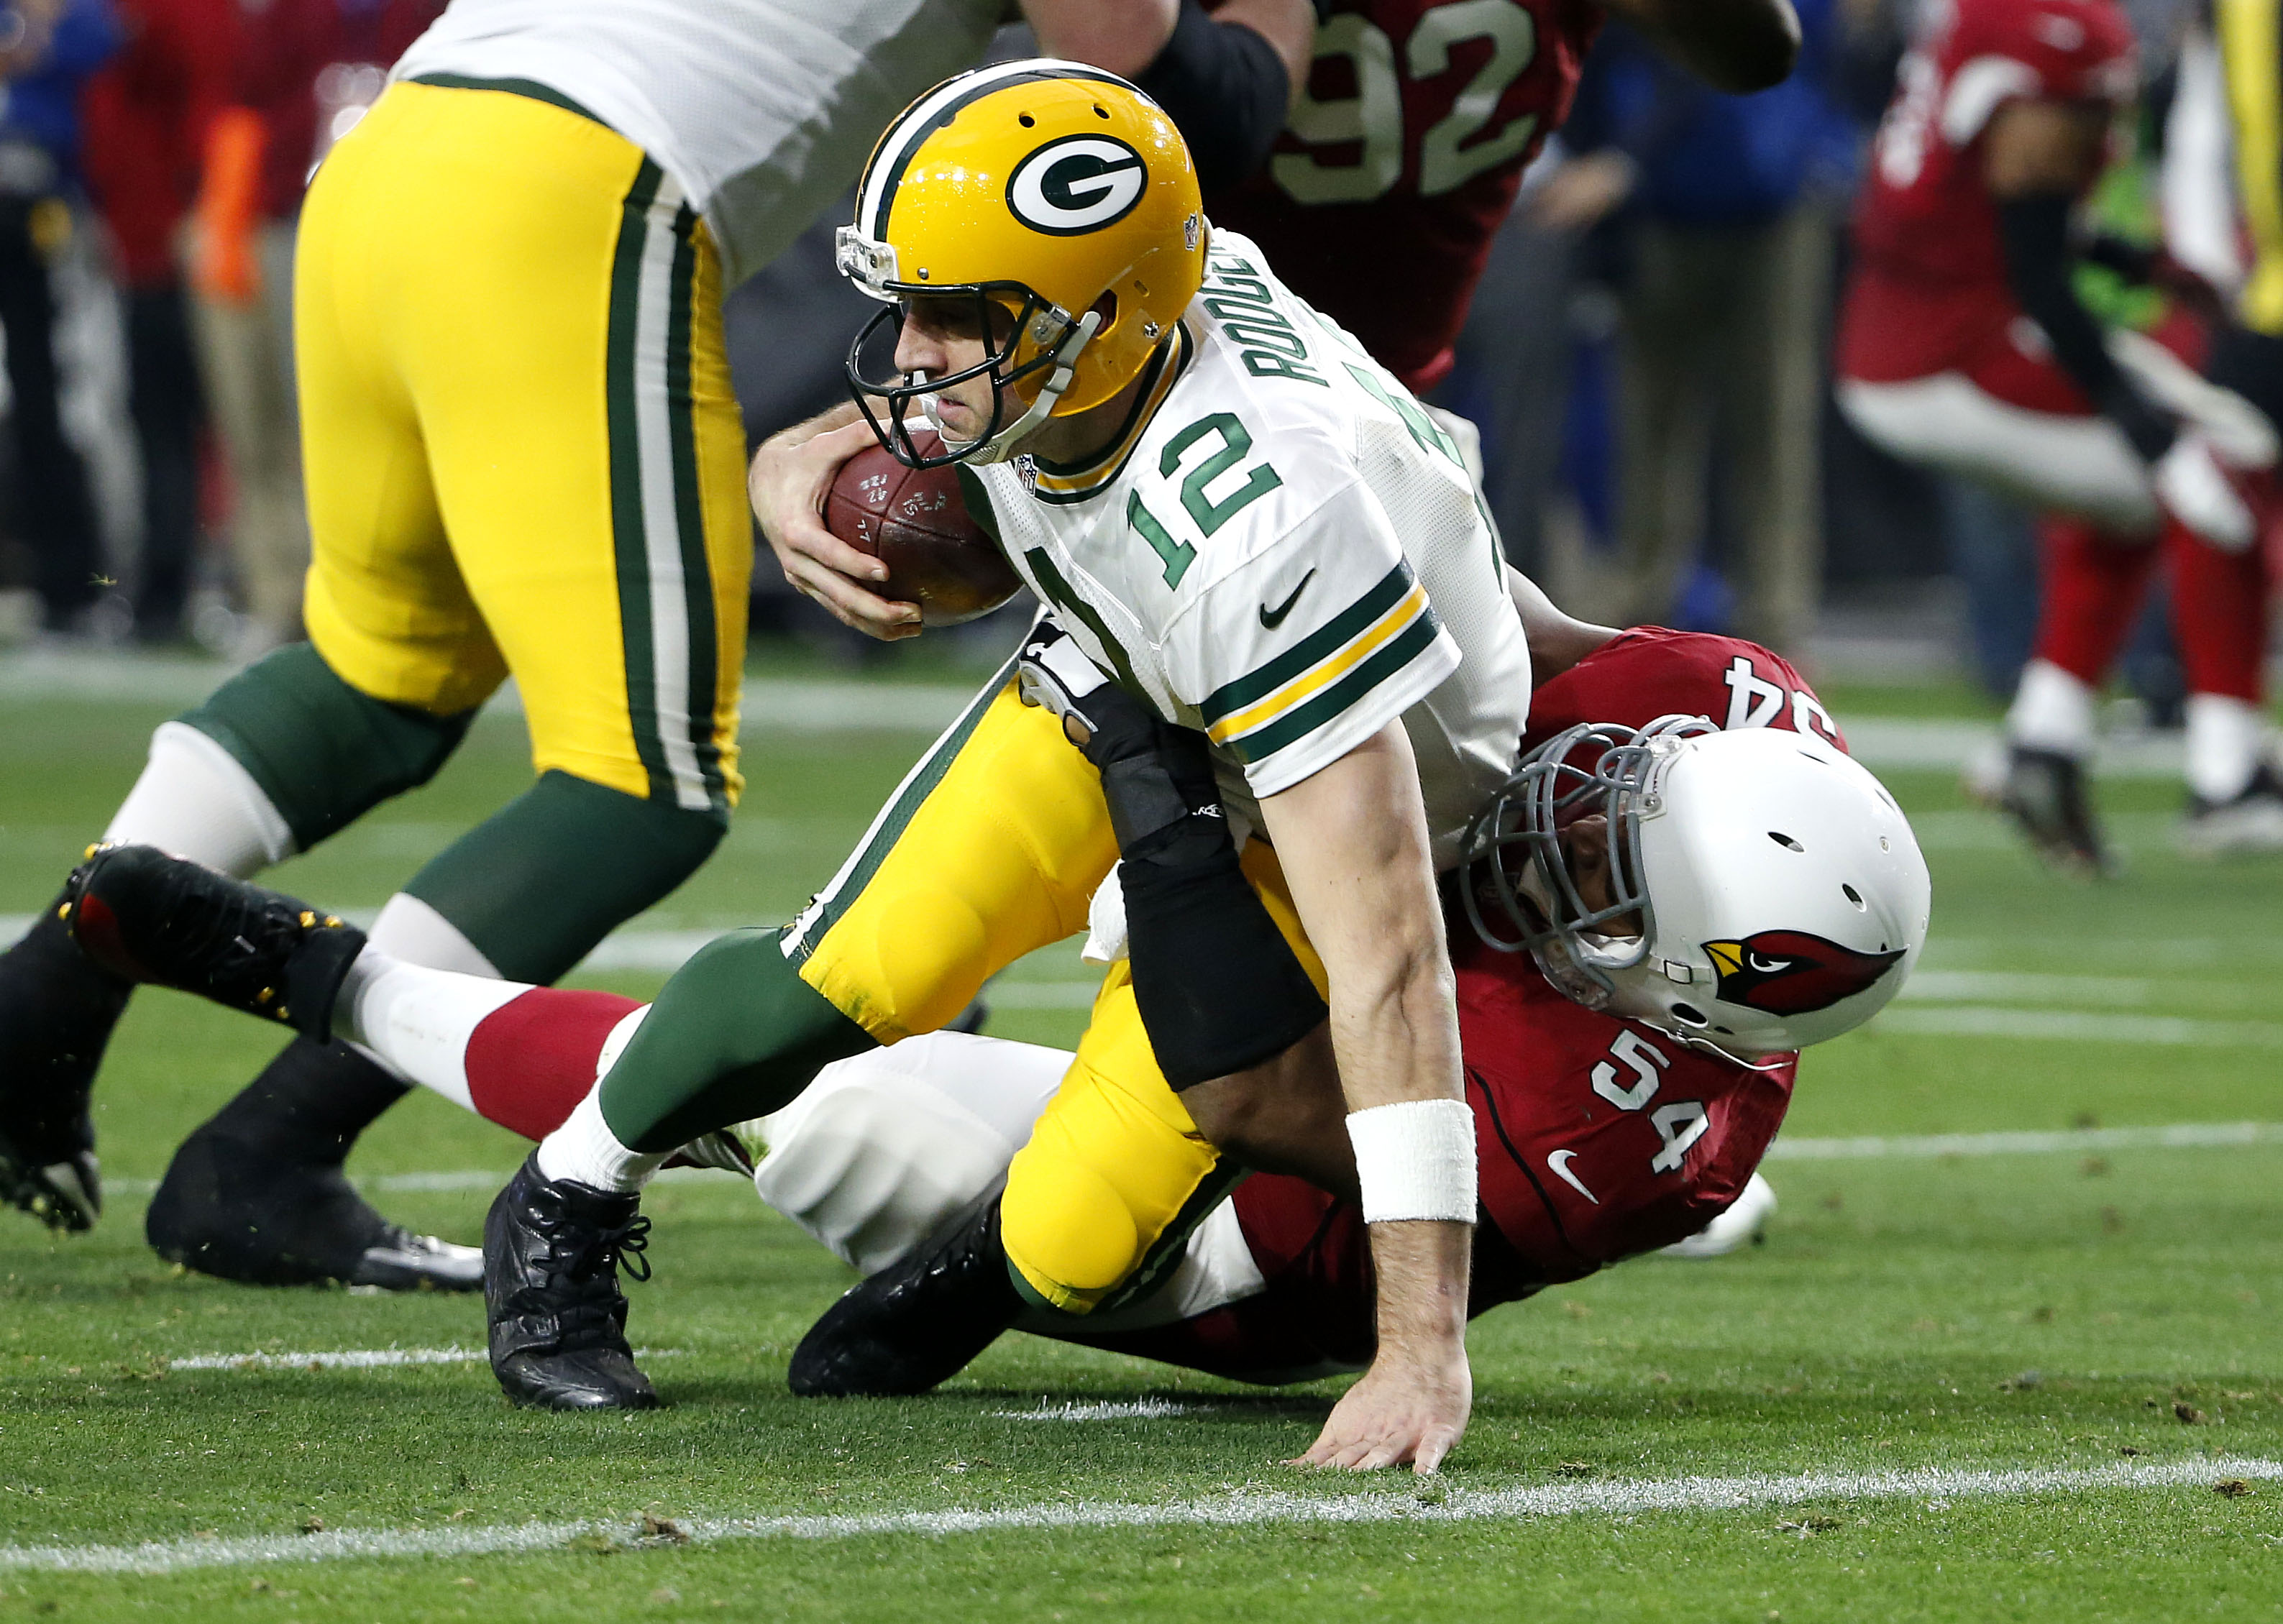 FILE - In this Dec. 27, 2015, file photo, Green Bay Packers quarterback Aaron Rodgers (12) is sacked by Arizona Cardinals inside linebacker Dwight Freeney during the second half of an NFL football game, in Glendale, Ariz. Three weeks ago, the Arizona Card